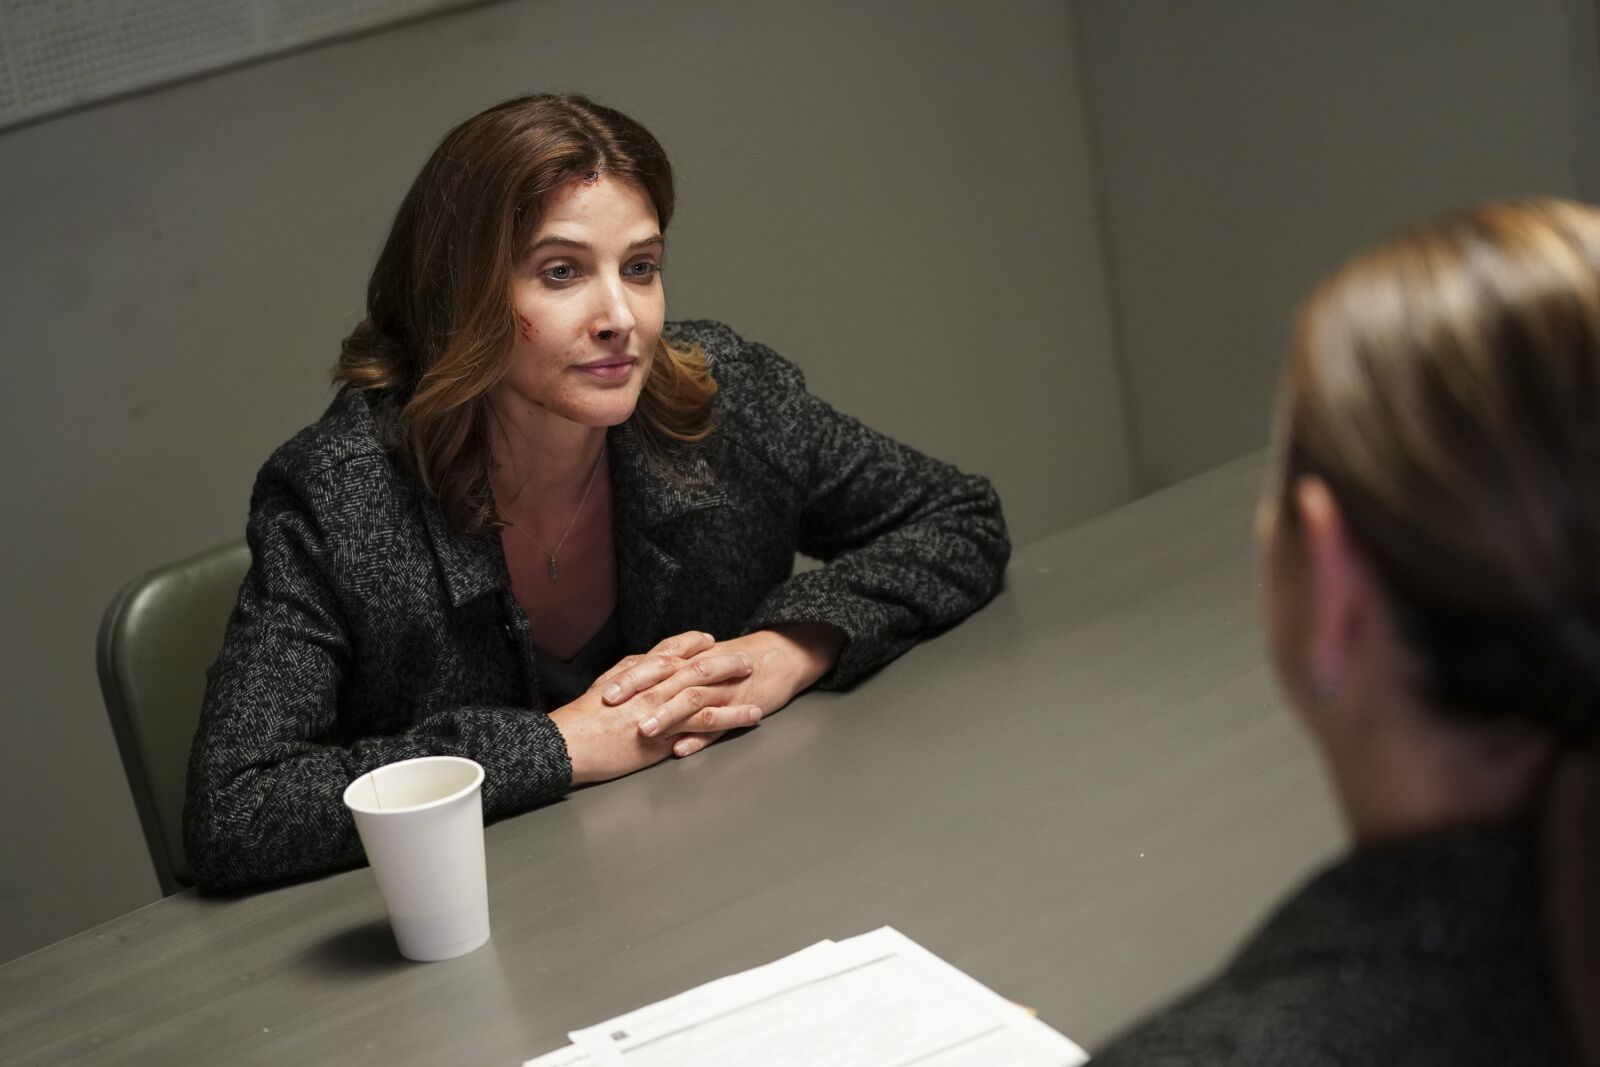 Stumptown ratings for Oct. 16: Is ABC's Cobie Smulders drama tanking?